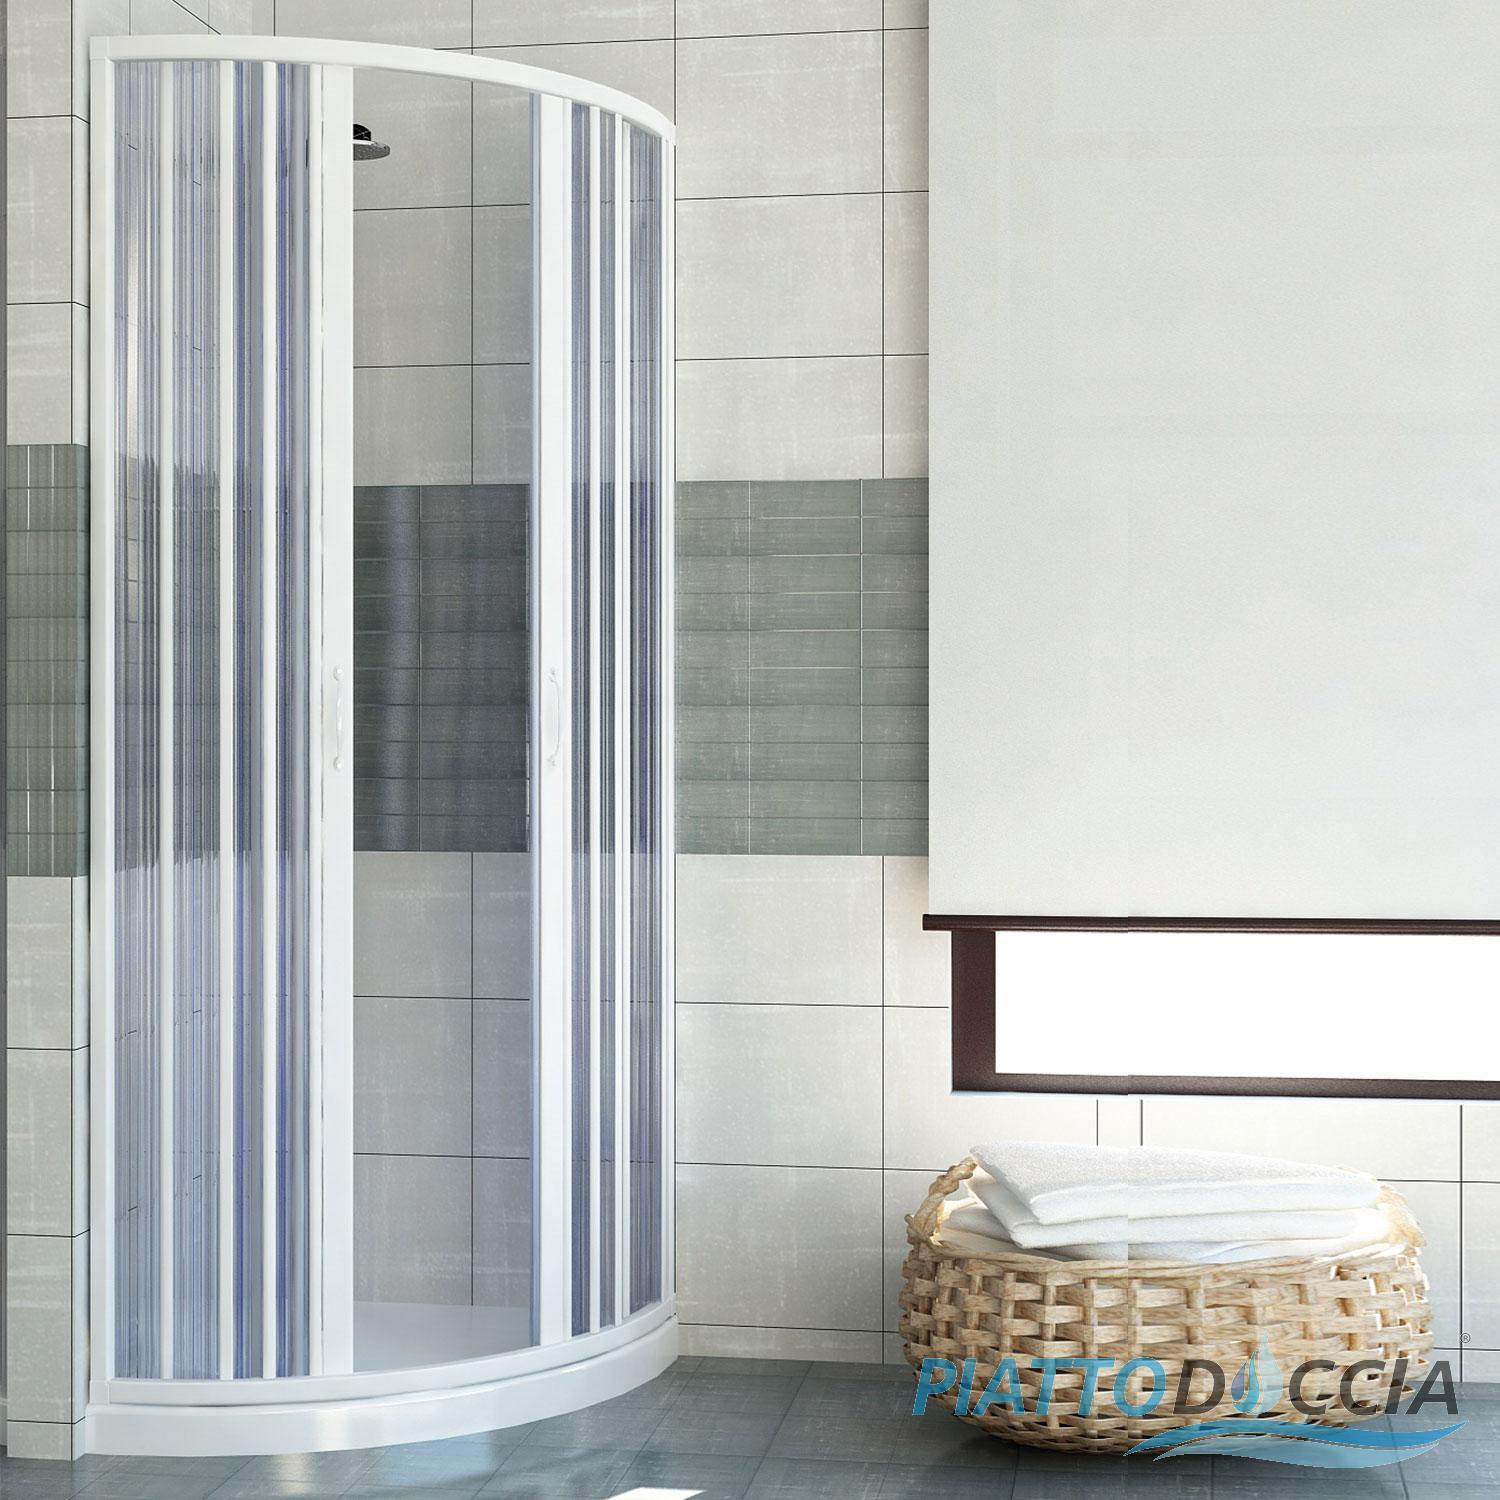 Box Doccia Sauna 70x90: Ideal standard box doccia pictures to pin ...